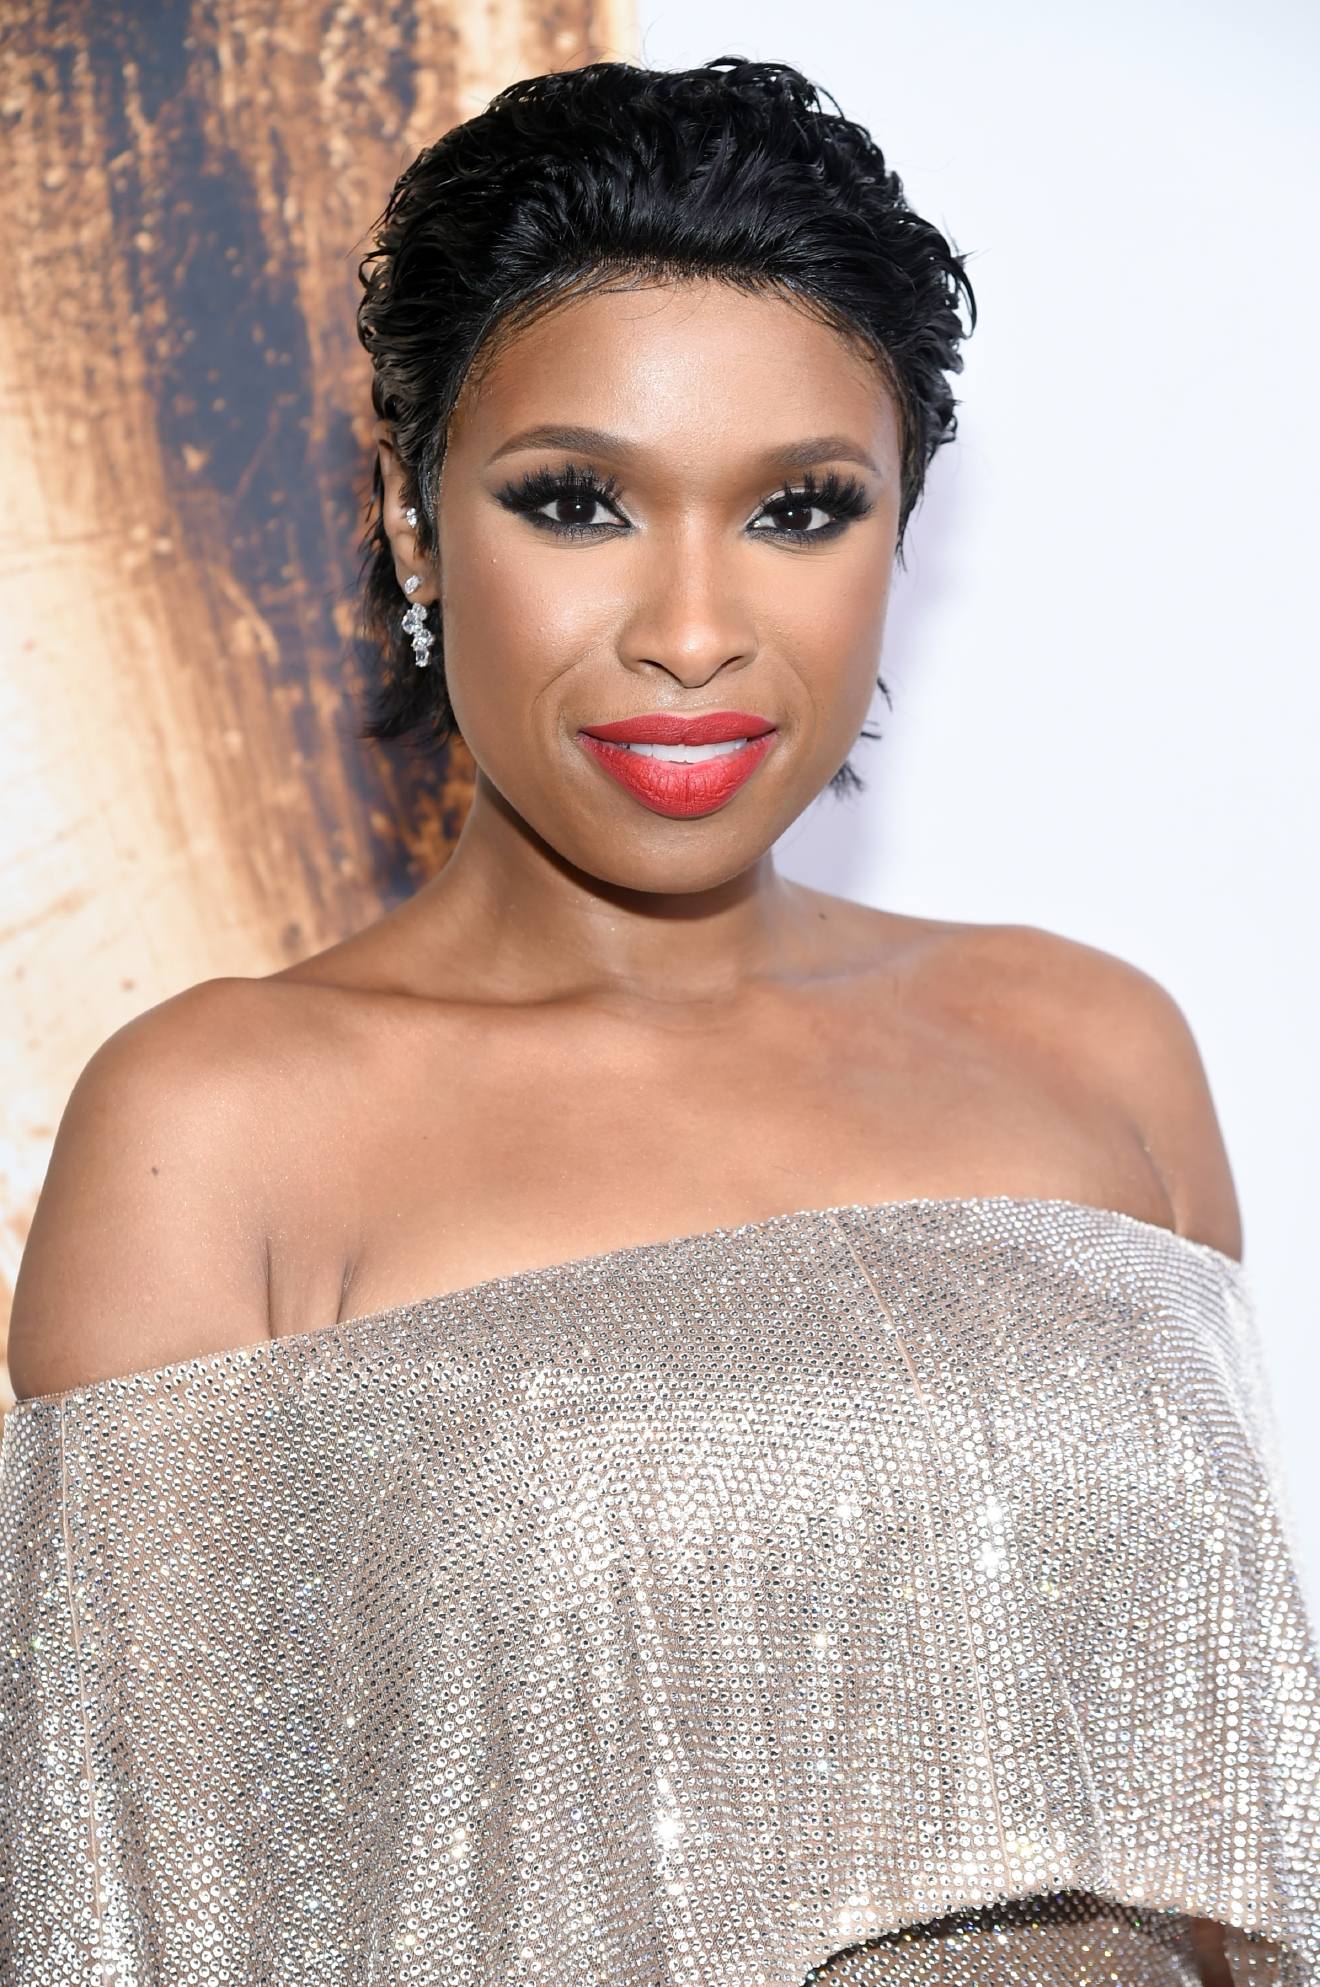 Jennifer Hudson poses at the CFDA Fashion Awards at the Hammerstein Ballroom on Monday, June 6, 2016, in New York. (Photo by Evan Agostini/Invision/AP)